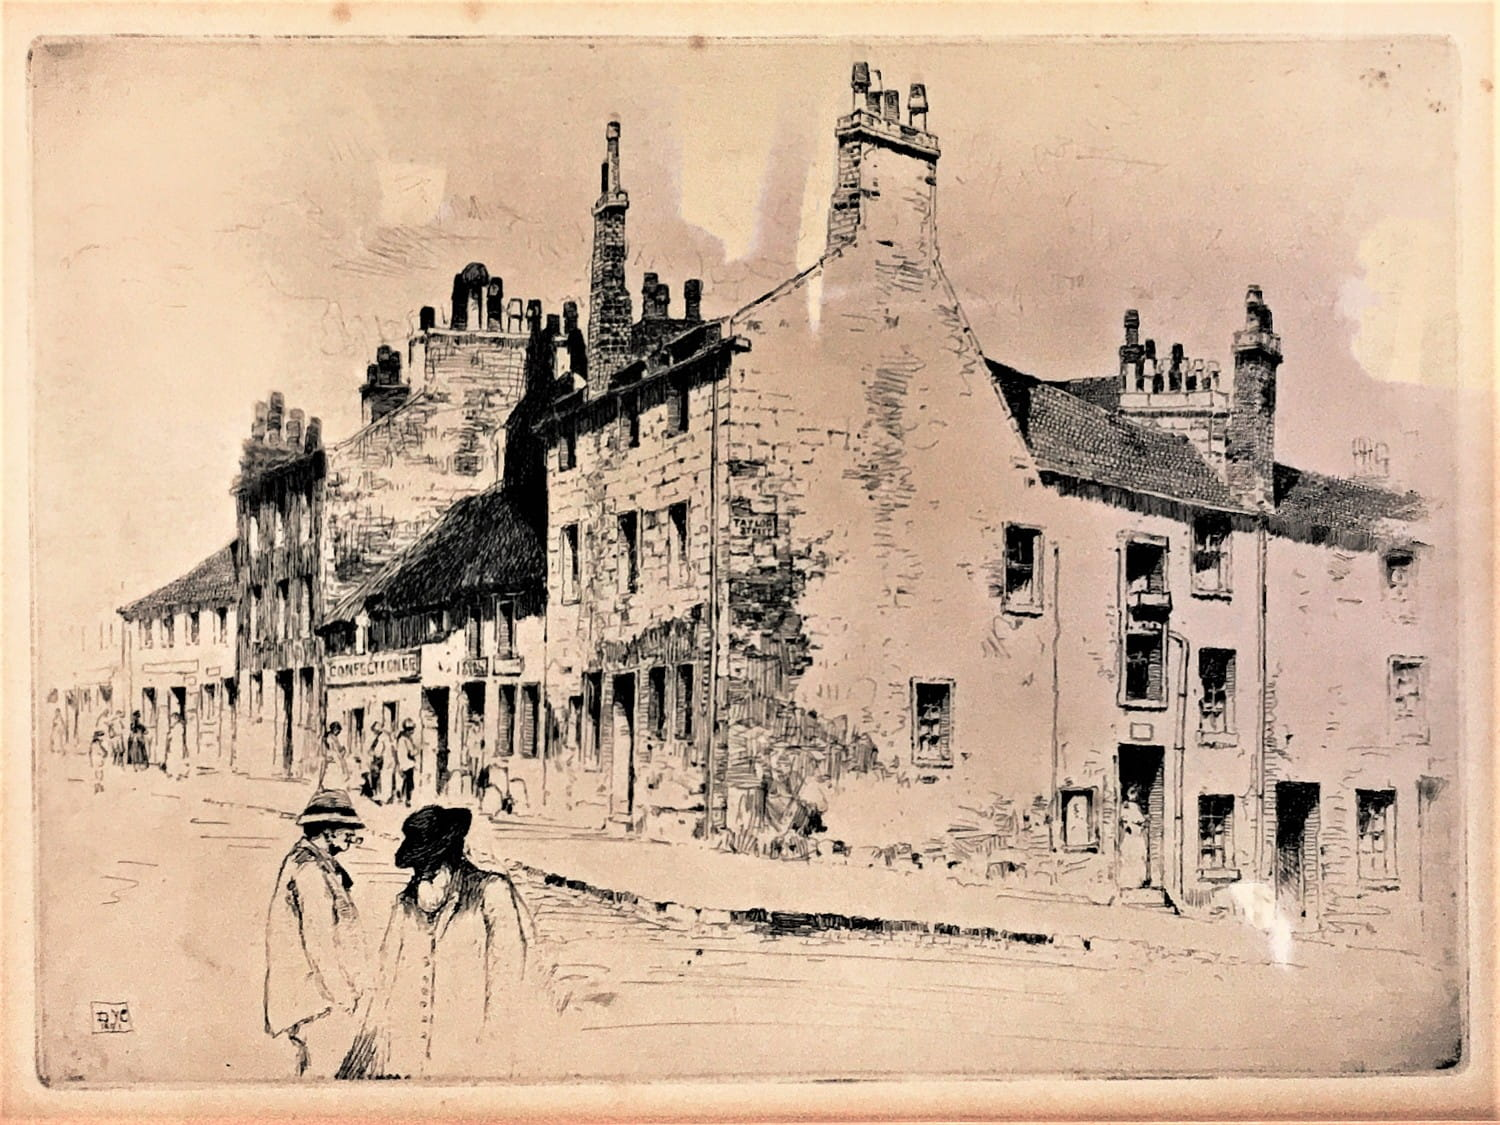 Taylor Street, Townhead, 1891, by David Young Cameron